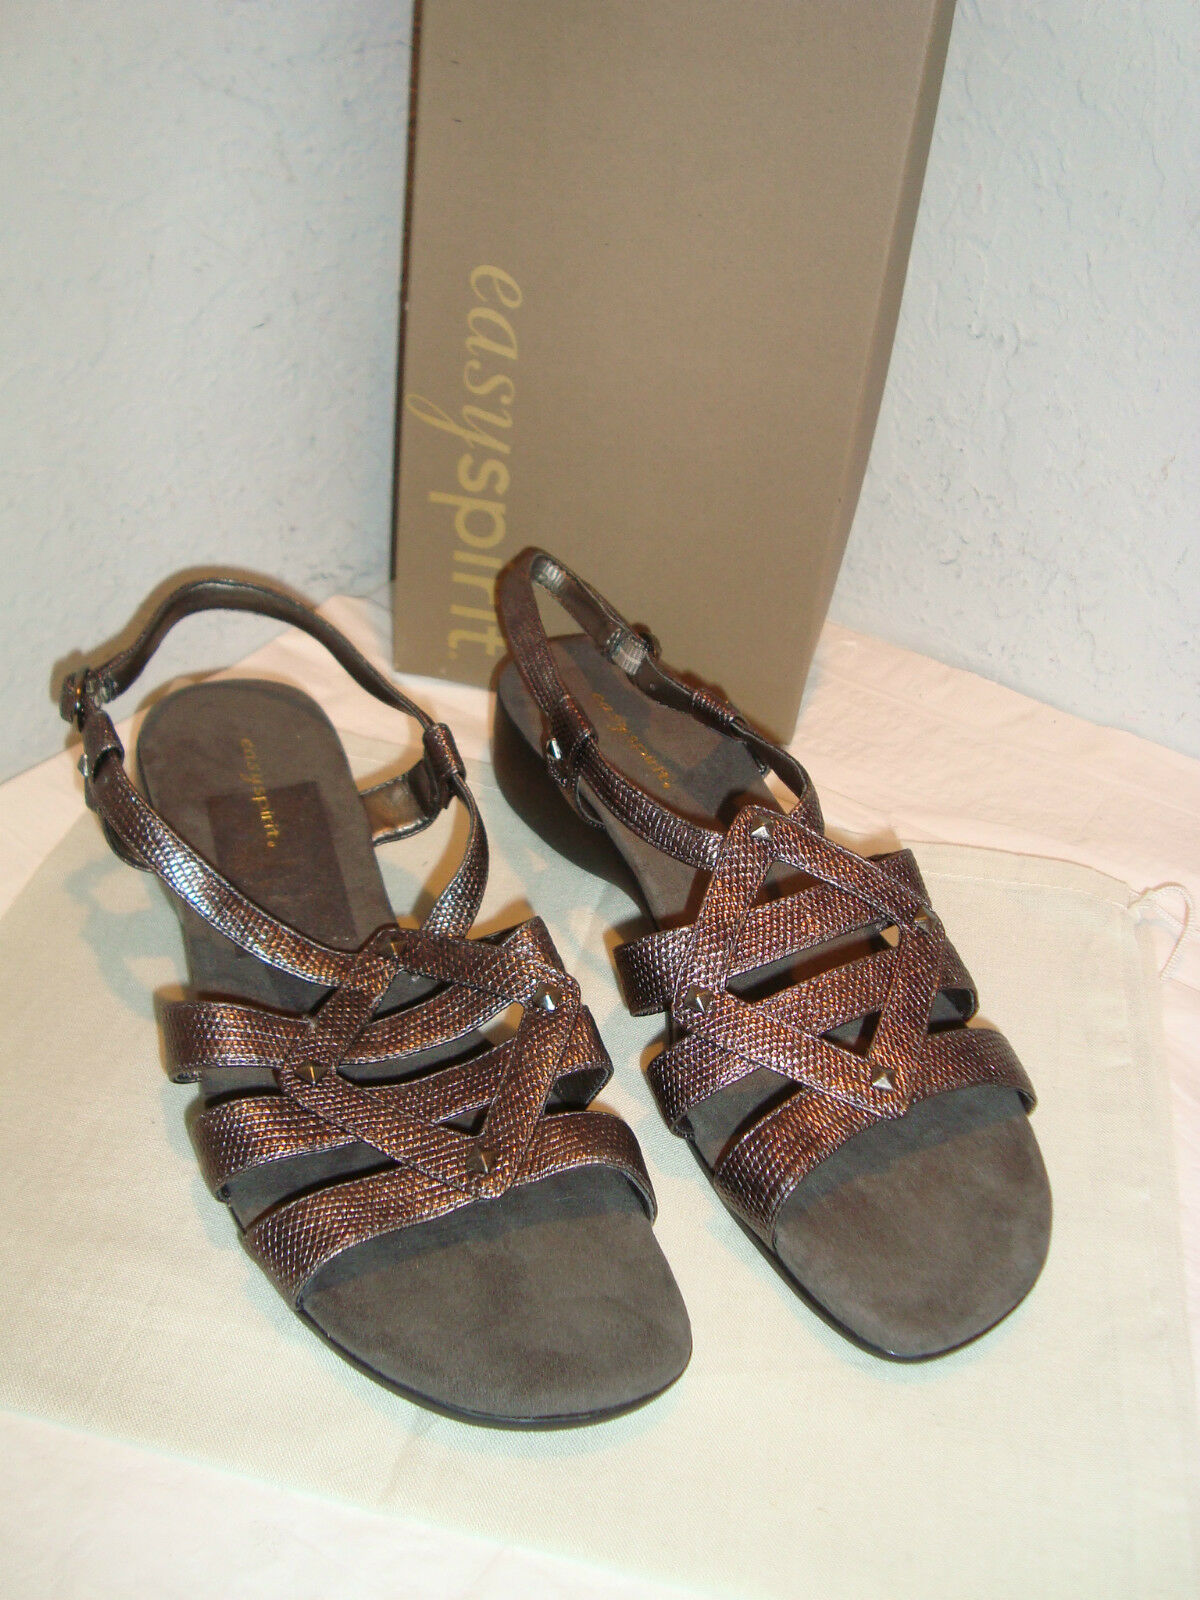 Easy Spirit New Womens Syler Pewter Sandals 9 M shoes